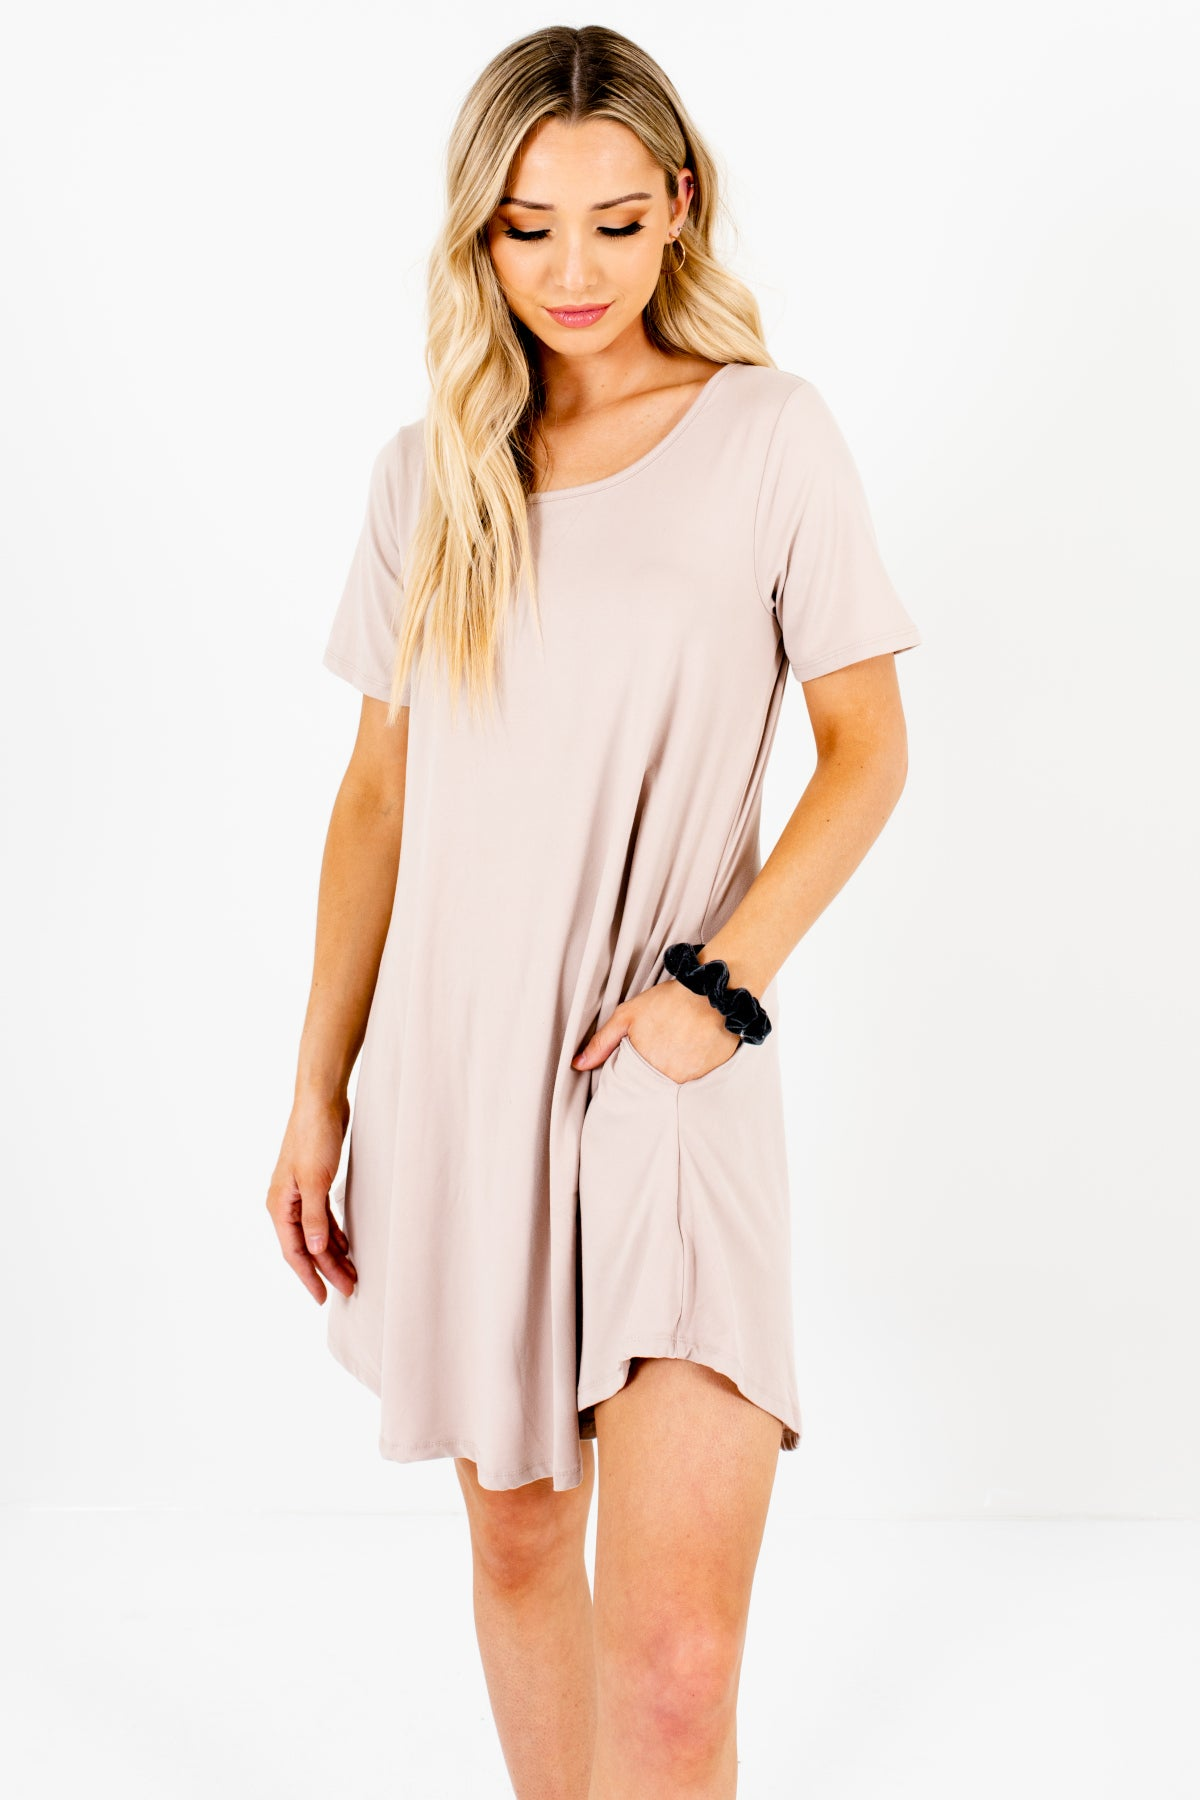 Beige Soft Comfy Mini Dresses with Pockets Affordable Online Boutique